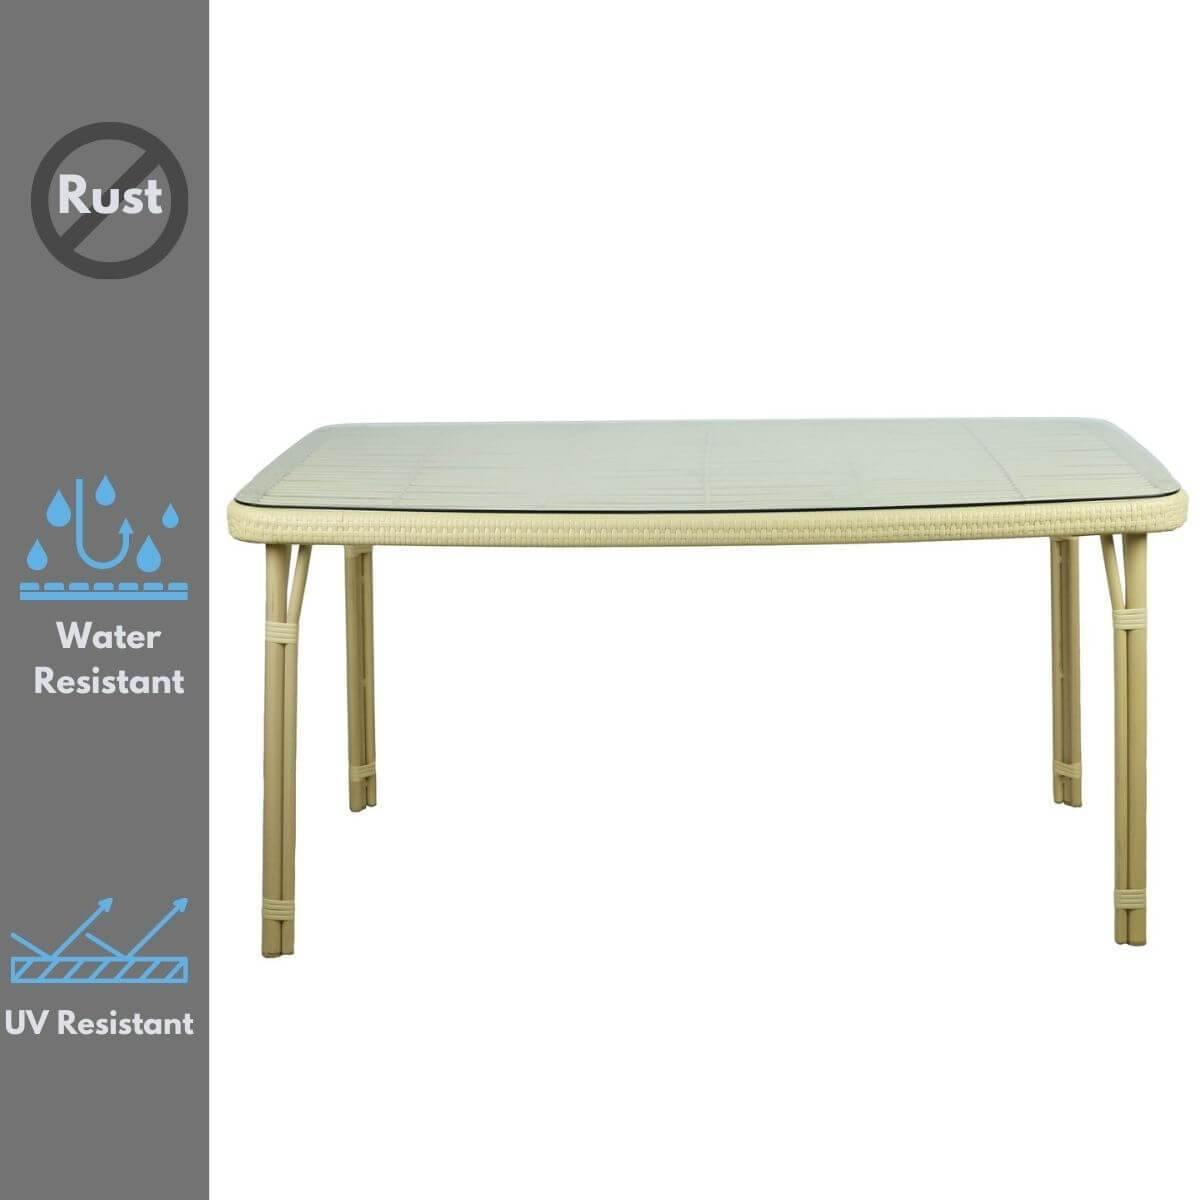 Curly Mediterranean Natural Outdoor Dining Table - Evopia